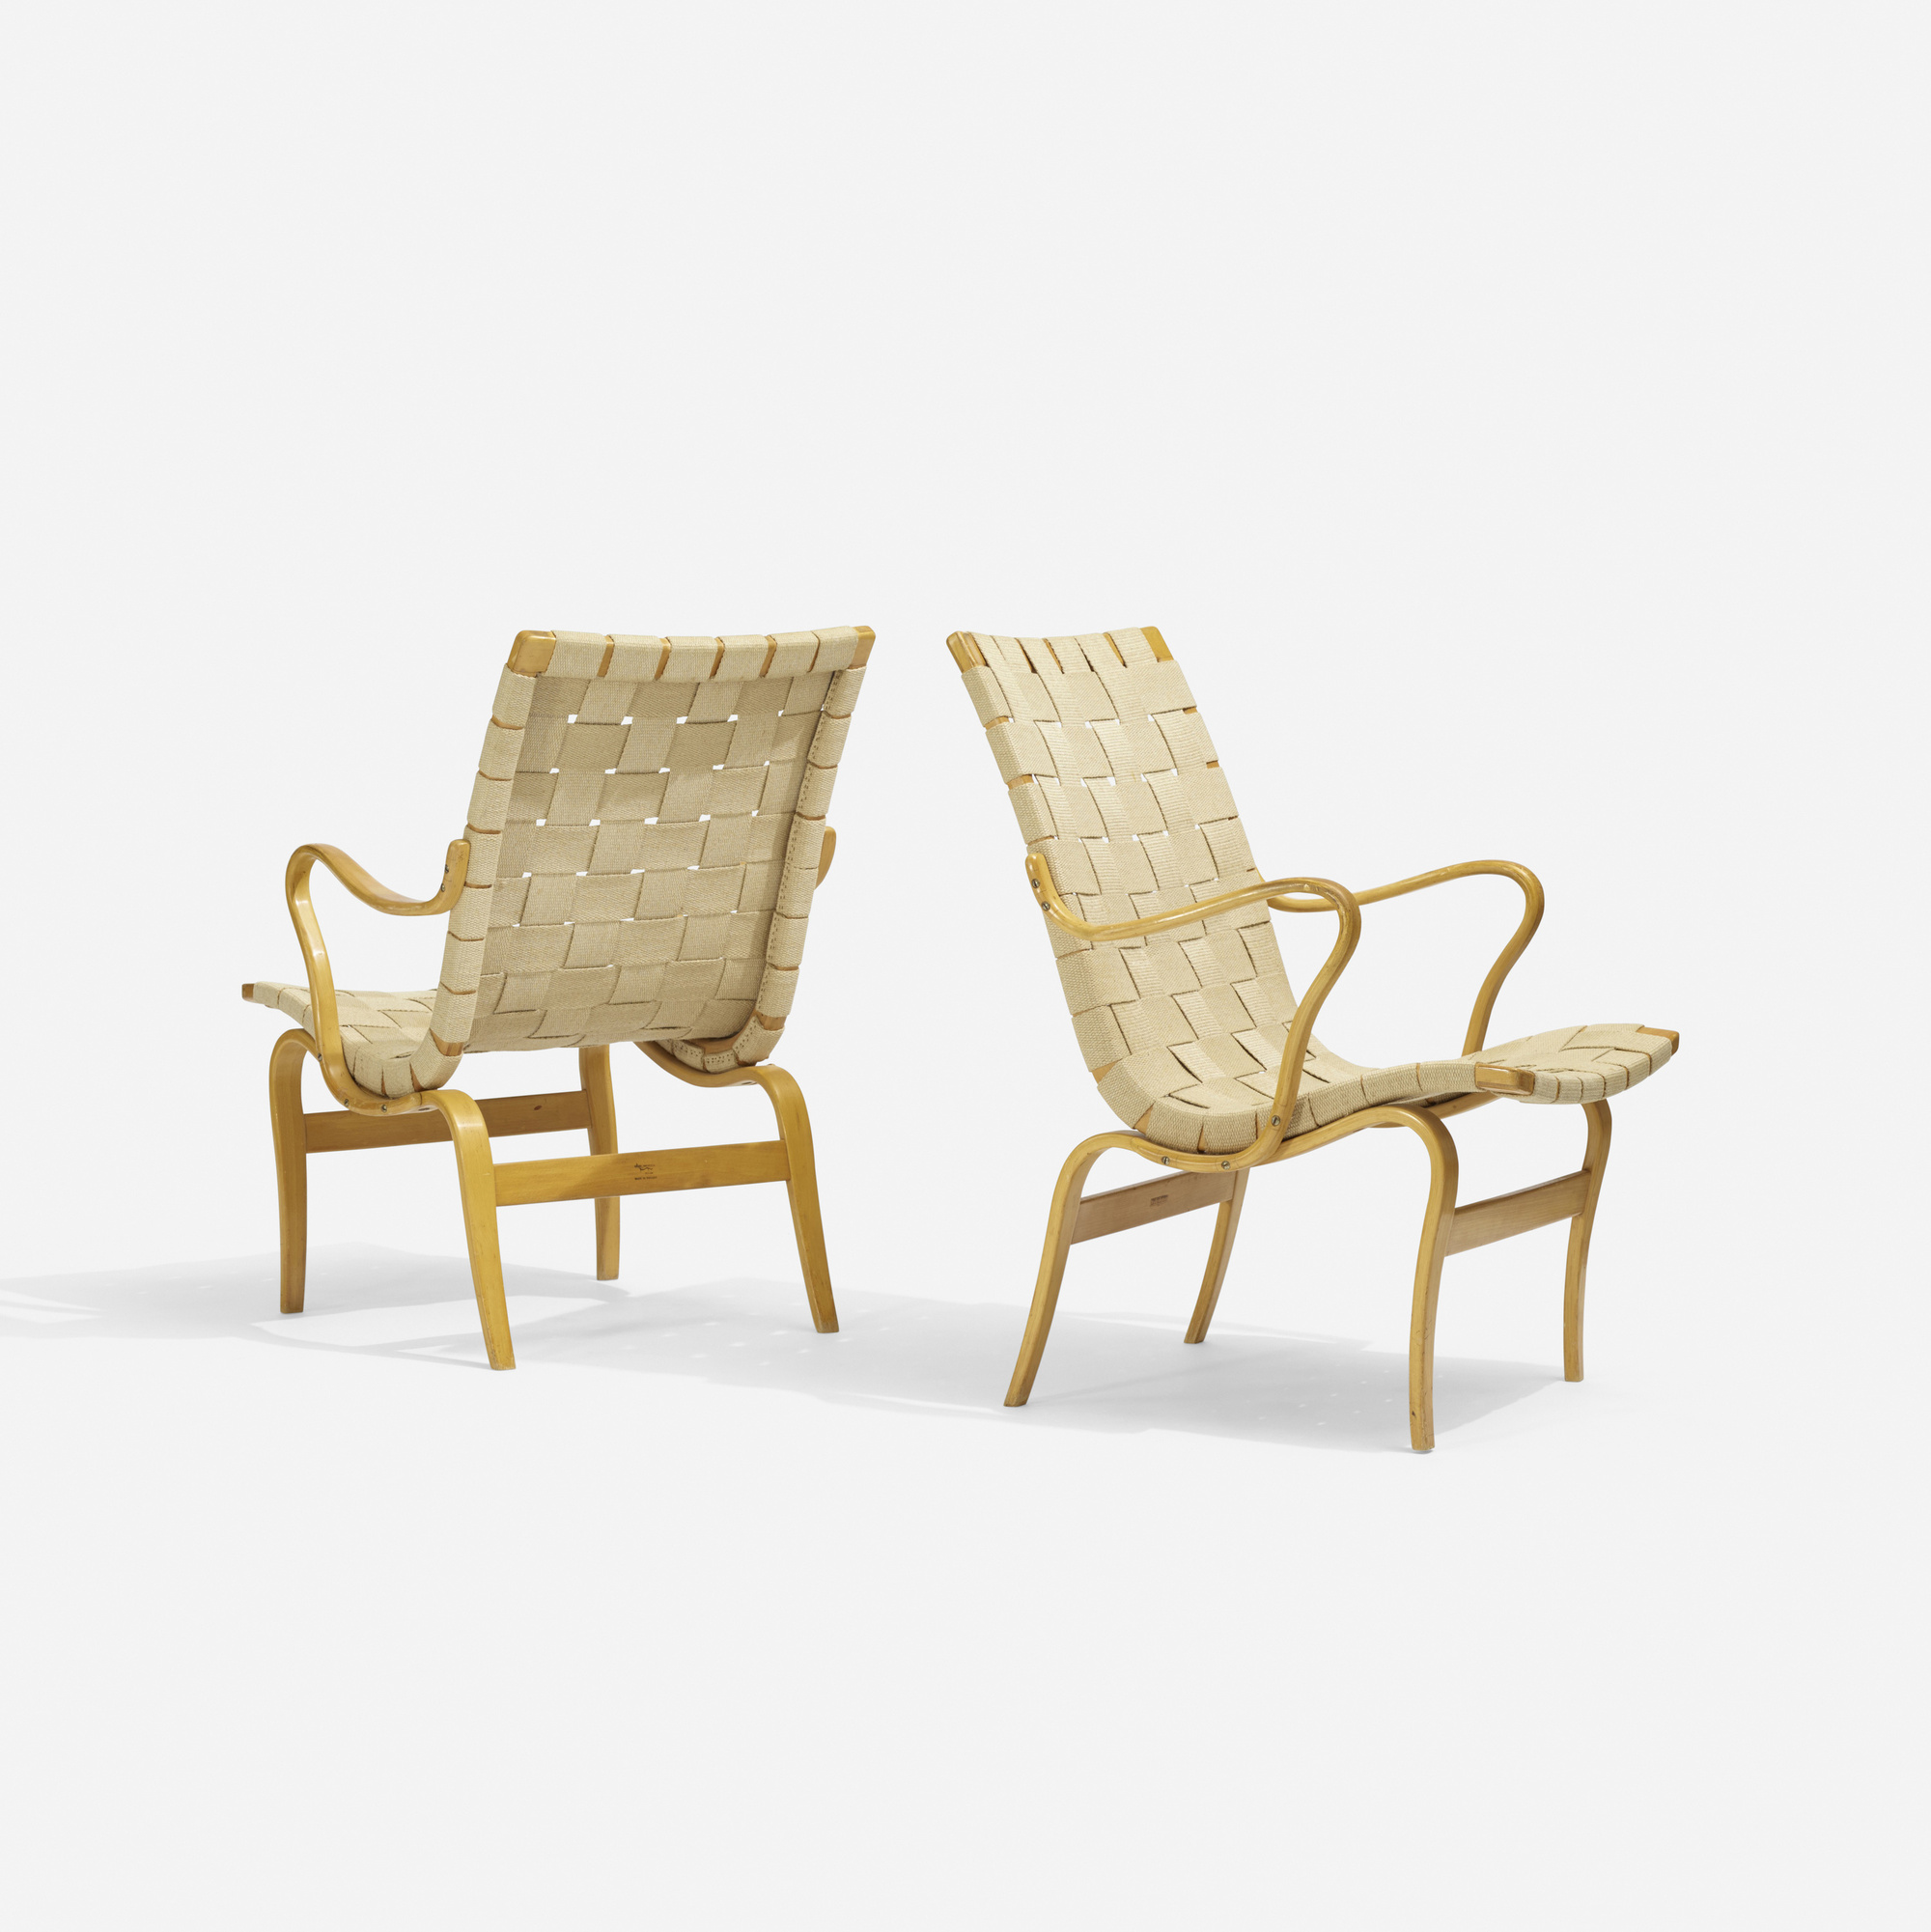 335: Bruno Mathsson / Eva chairs, pair (2 of 3)